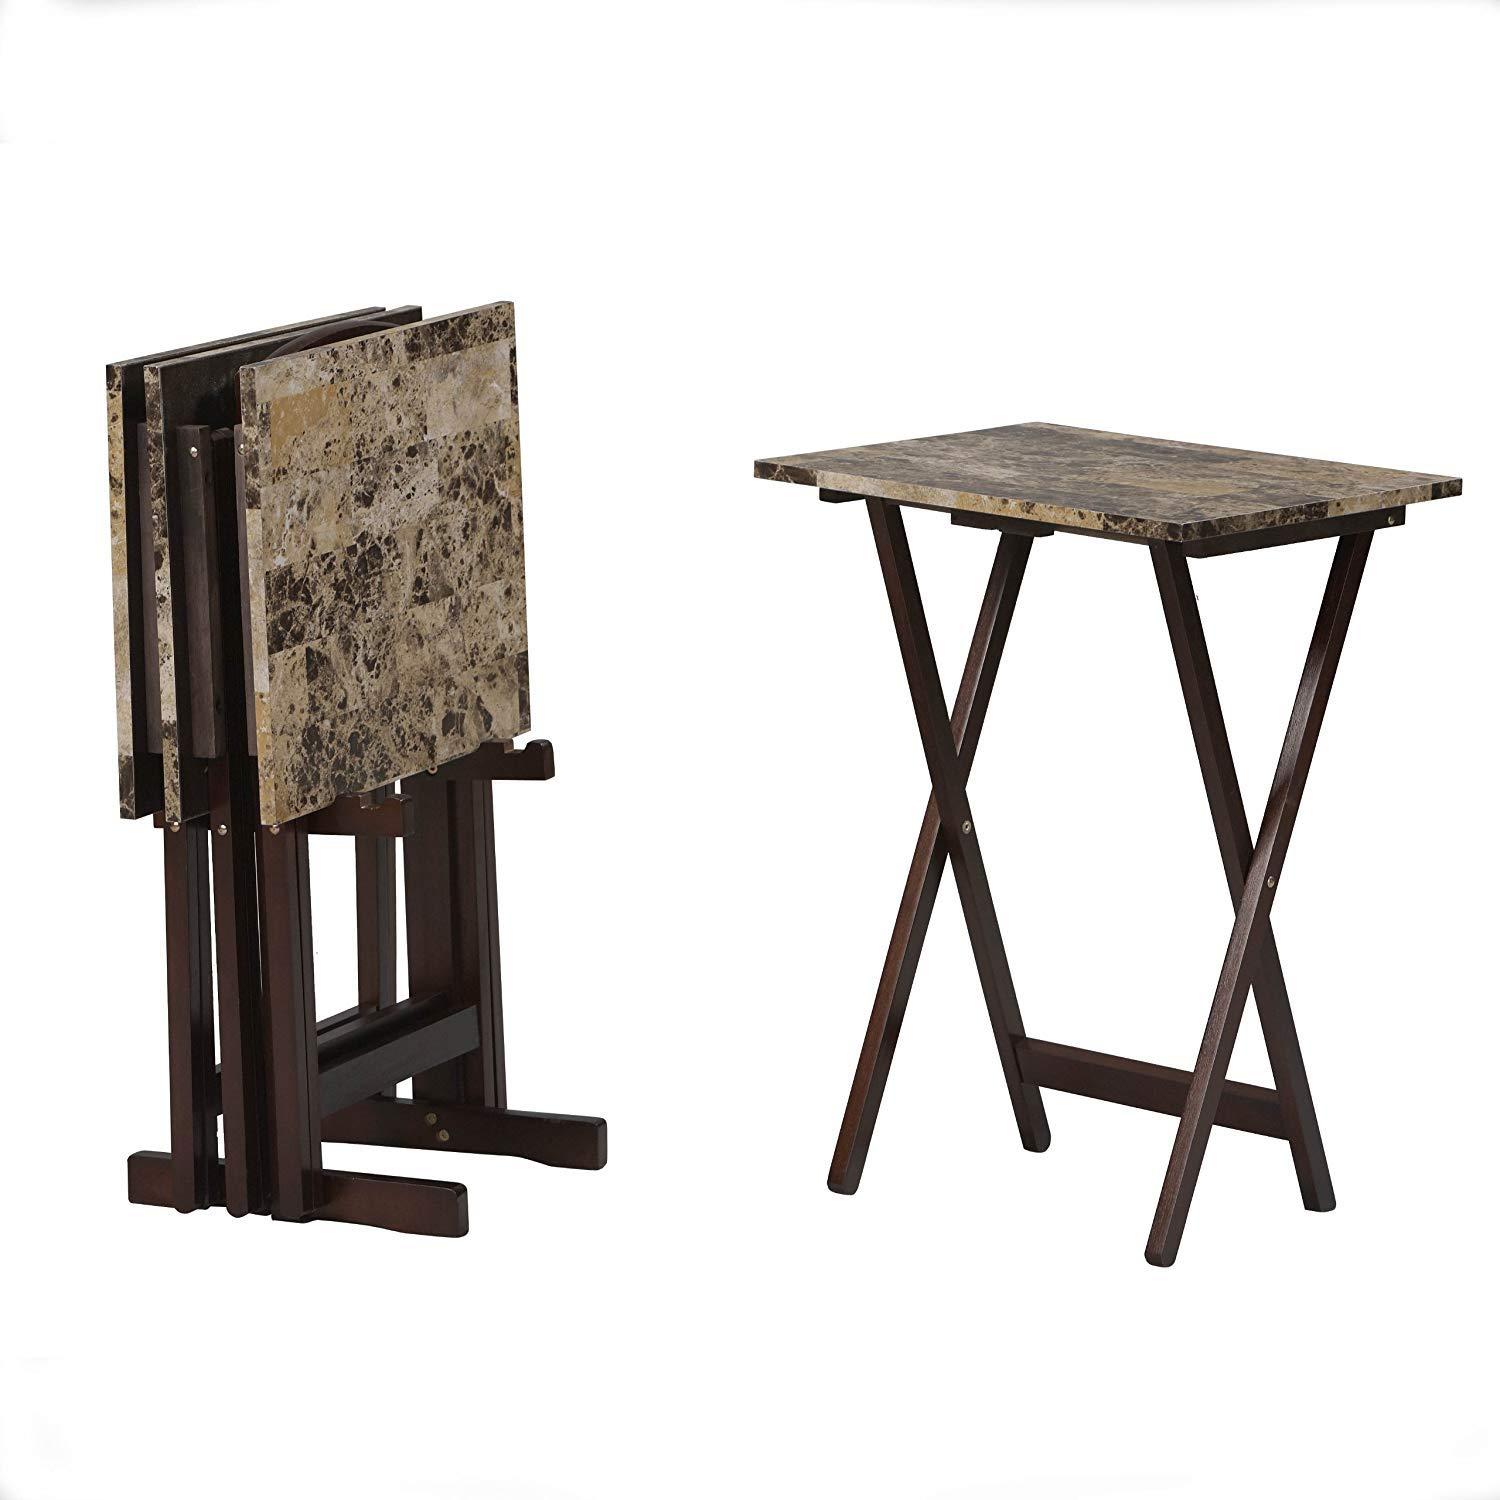 Linon Home Decor Tray Table Set, Faux Marble, Brown Pack of 2